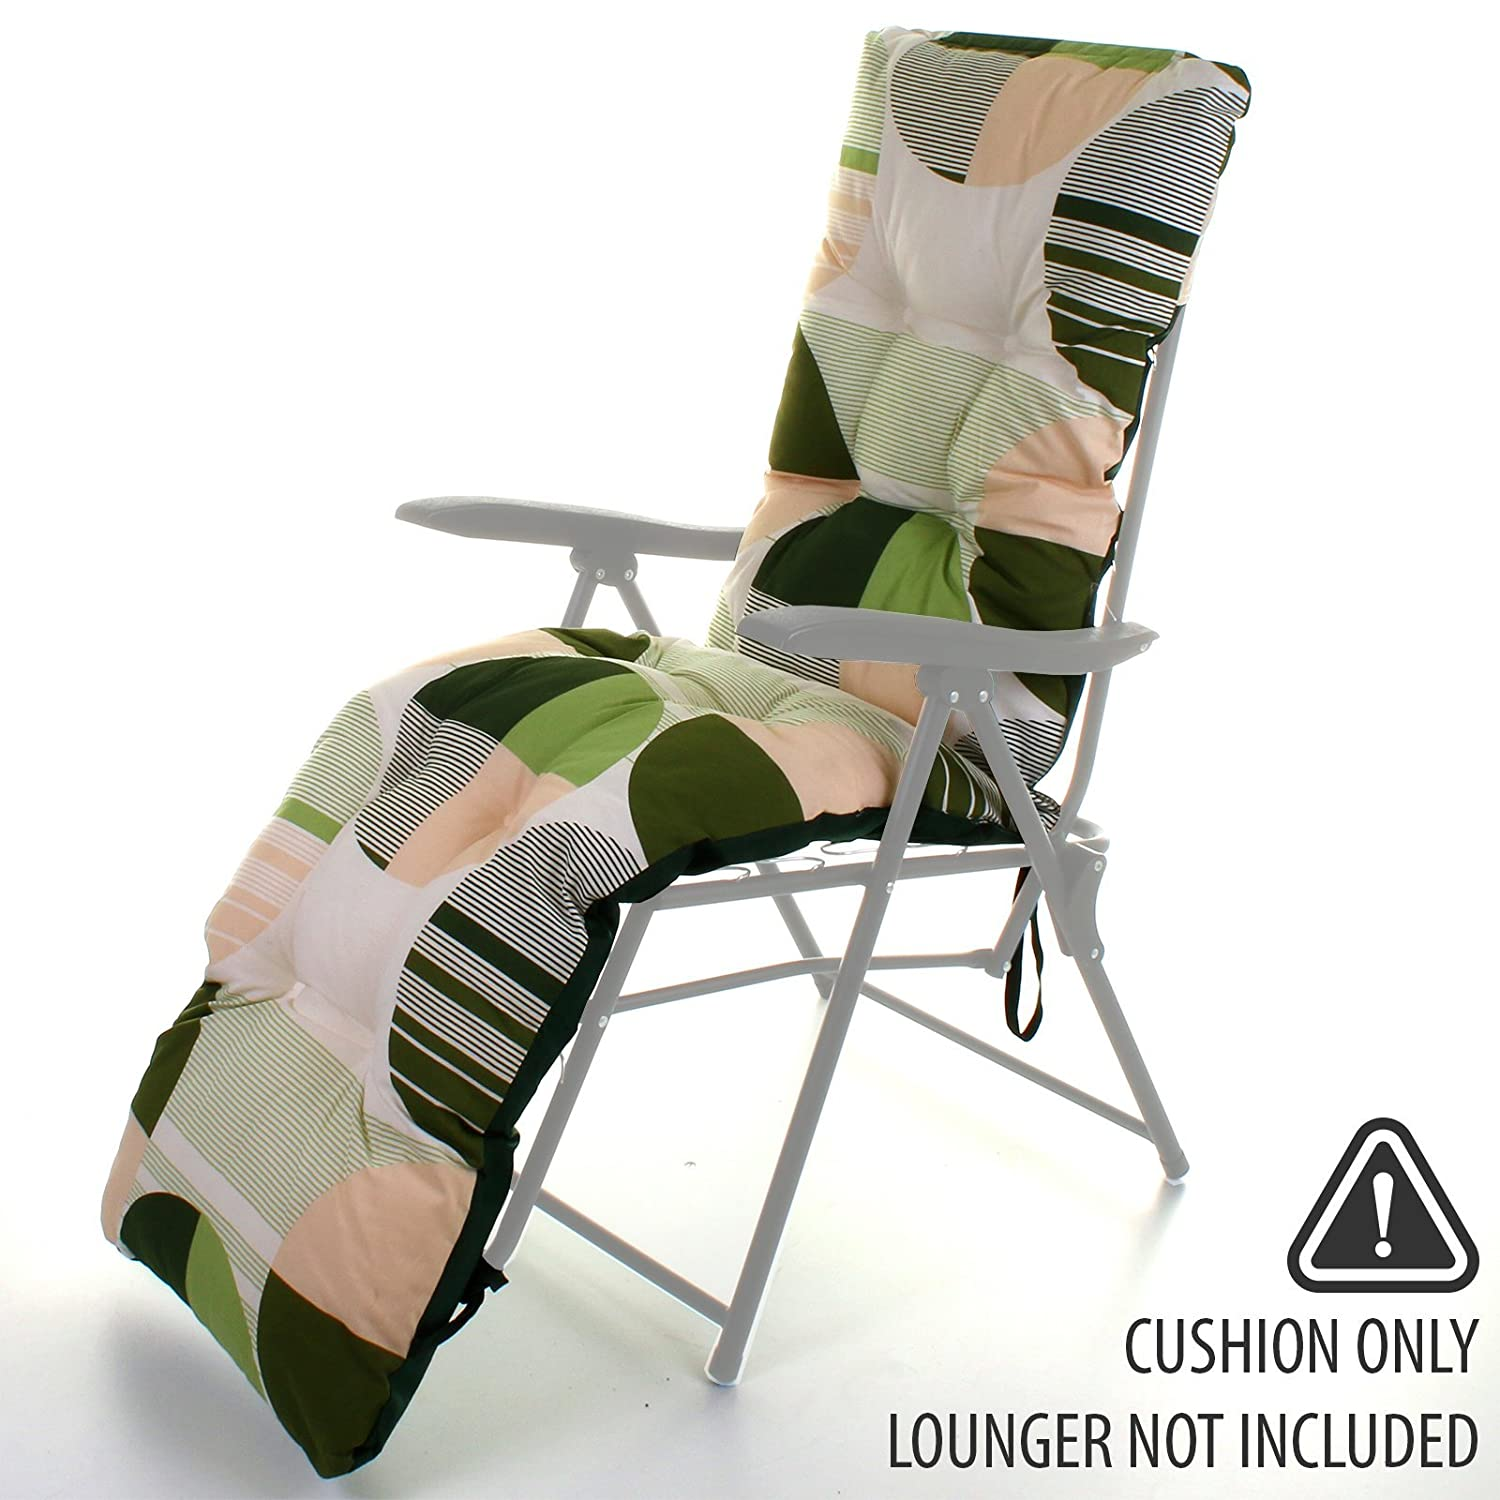 replacement outdoor garden sun lounger cushion thick padded spare